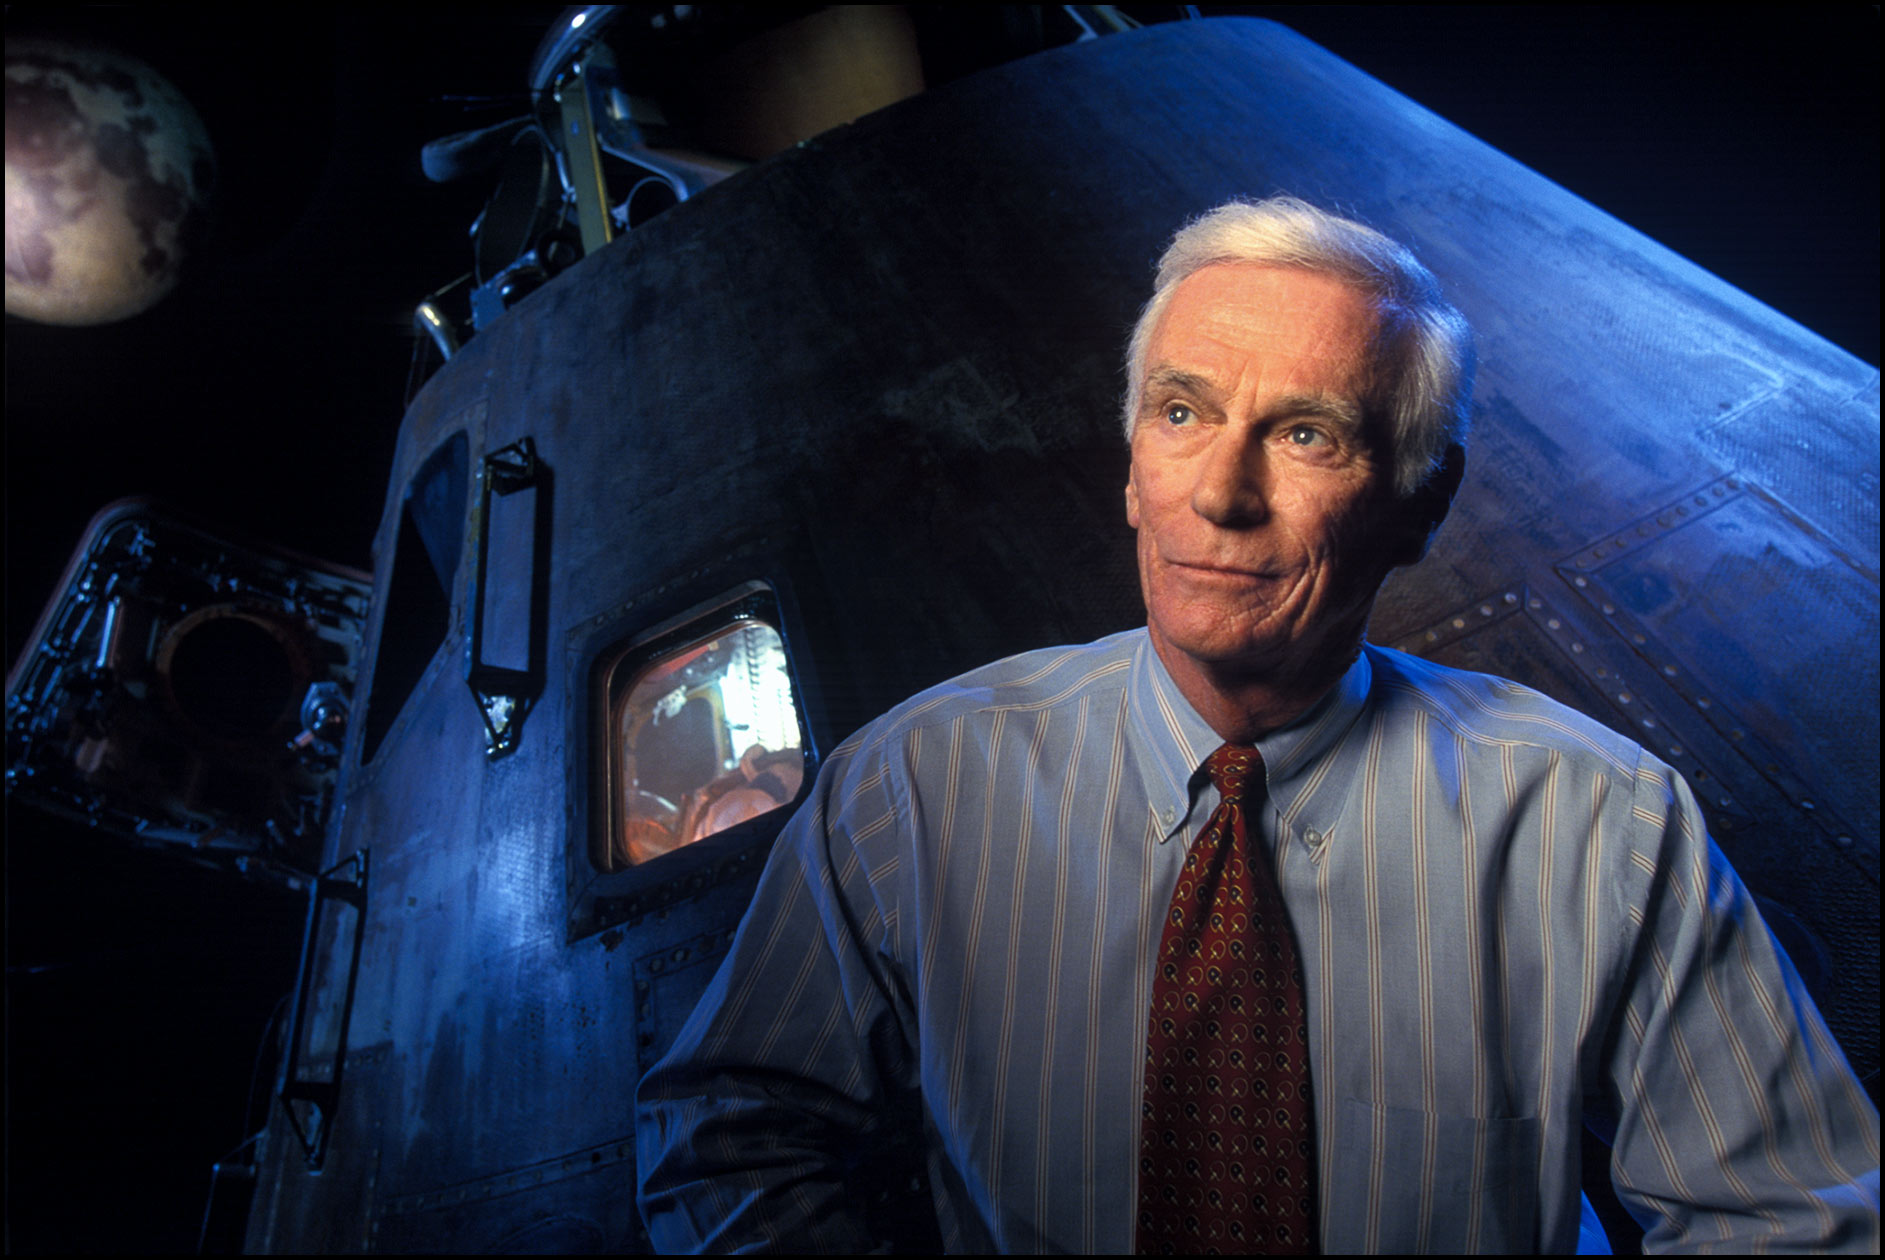 Eugene Cernan, former Apollo astronaut who walked on the moon, in front of an Apollo space capsule display.